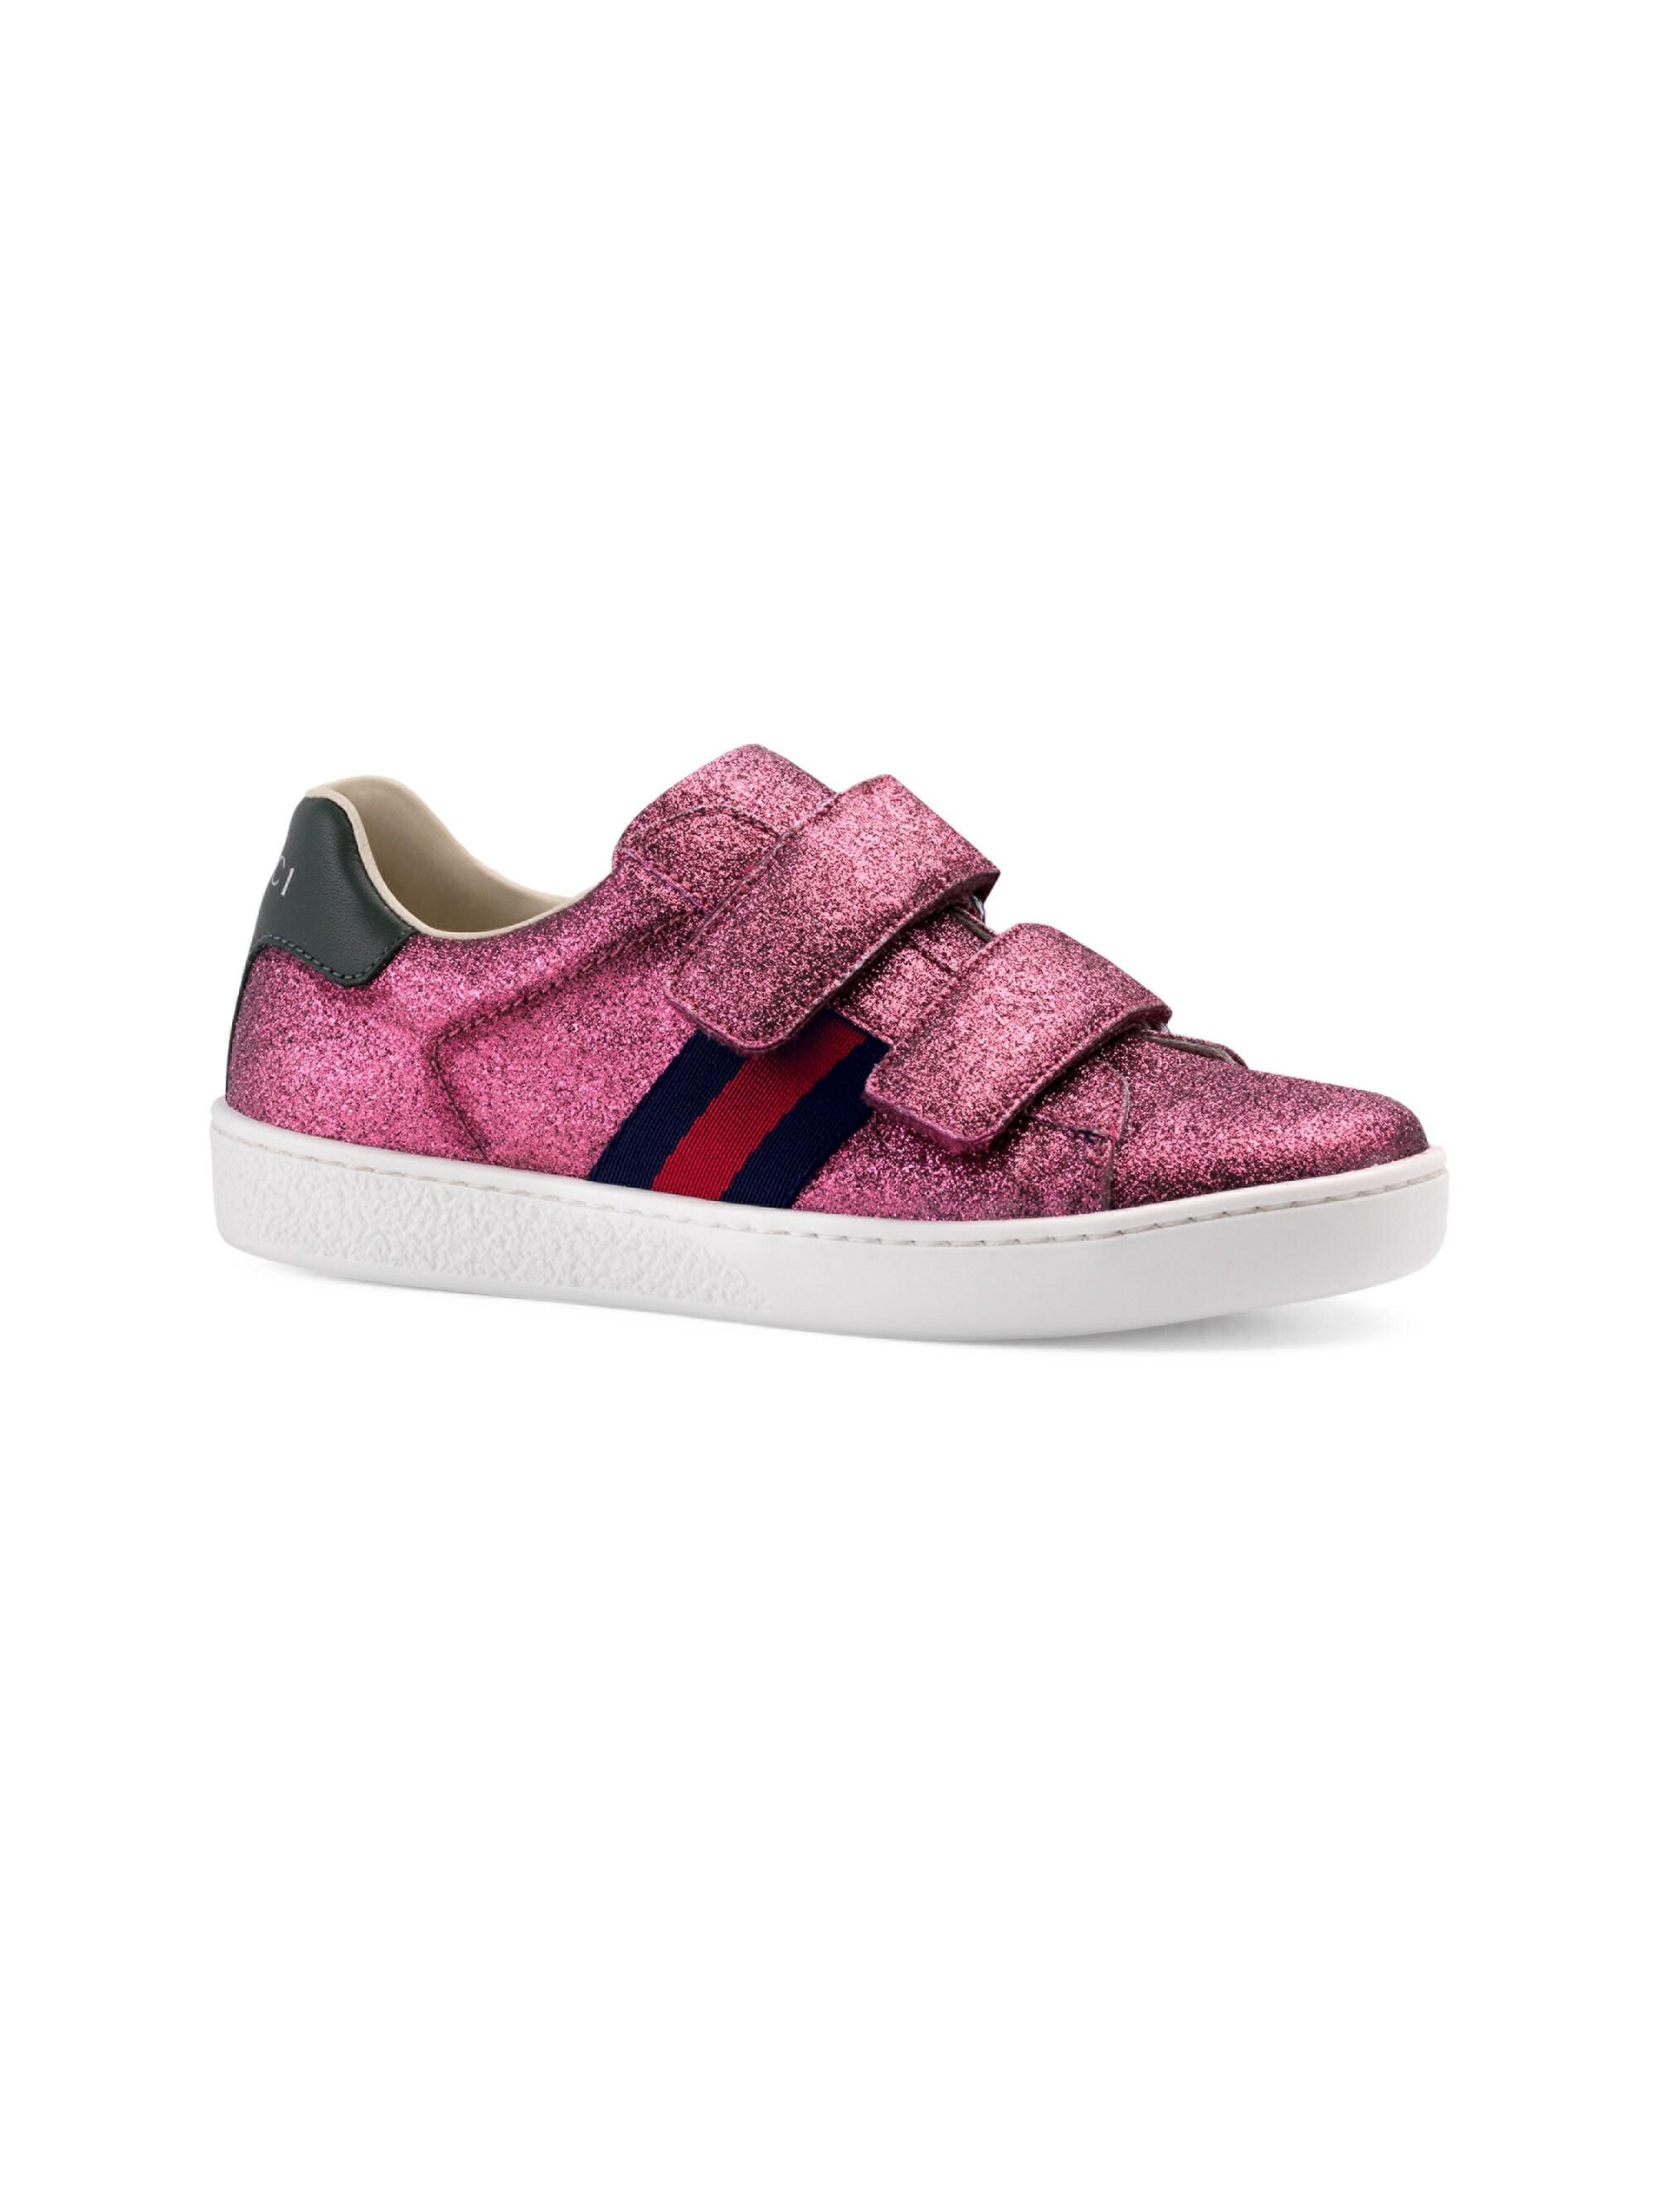 d9f8ef1d5 Lyst - Gucci Girl's Glitter Sneakers in Pink